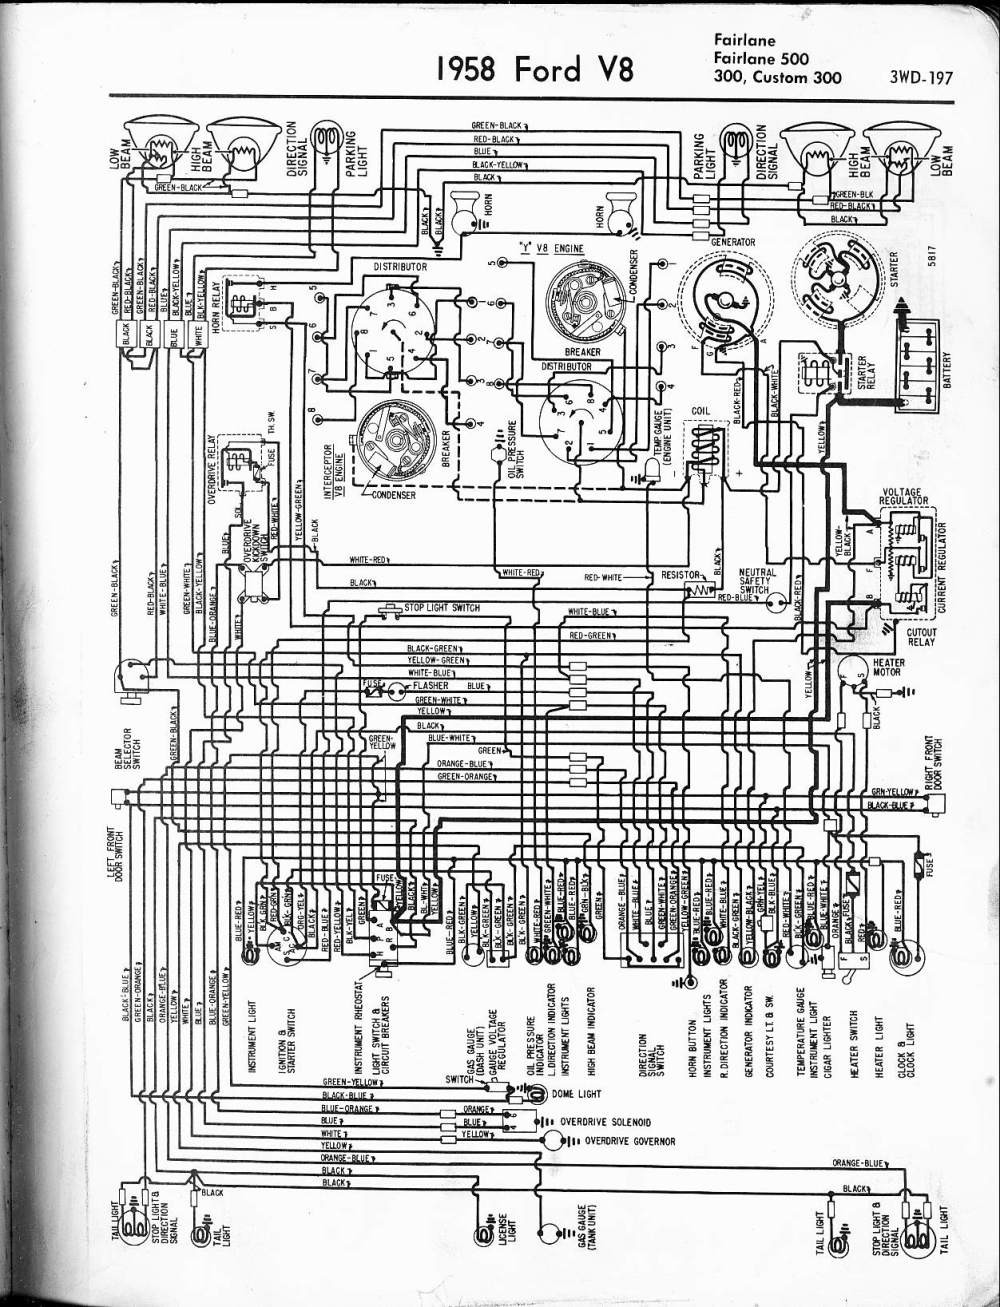 medium resolution of 57 65 ford wiring diagrams ford alternator diagrams 1958 v8 fairlane 500 300